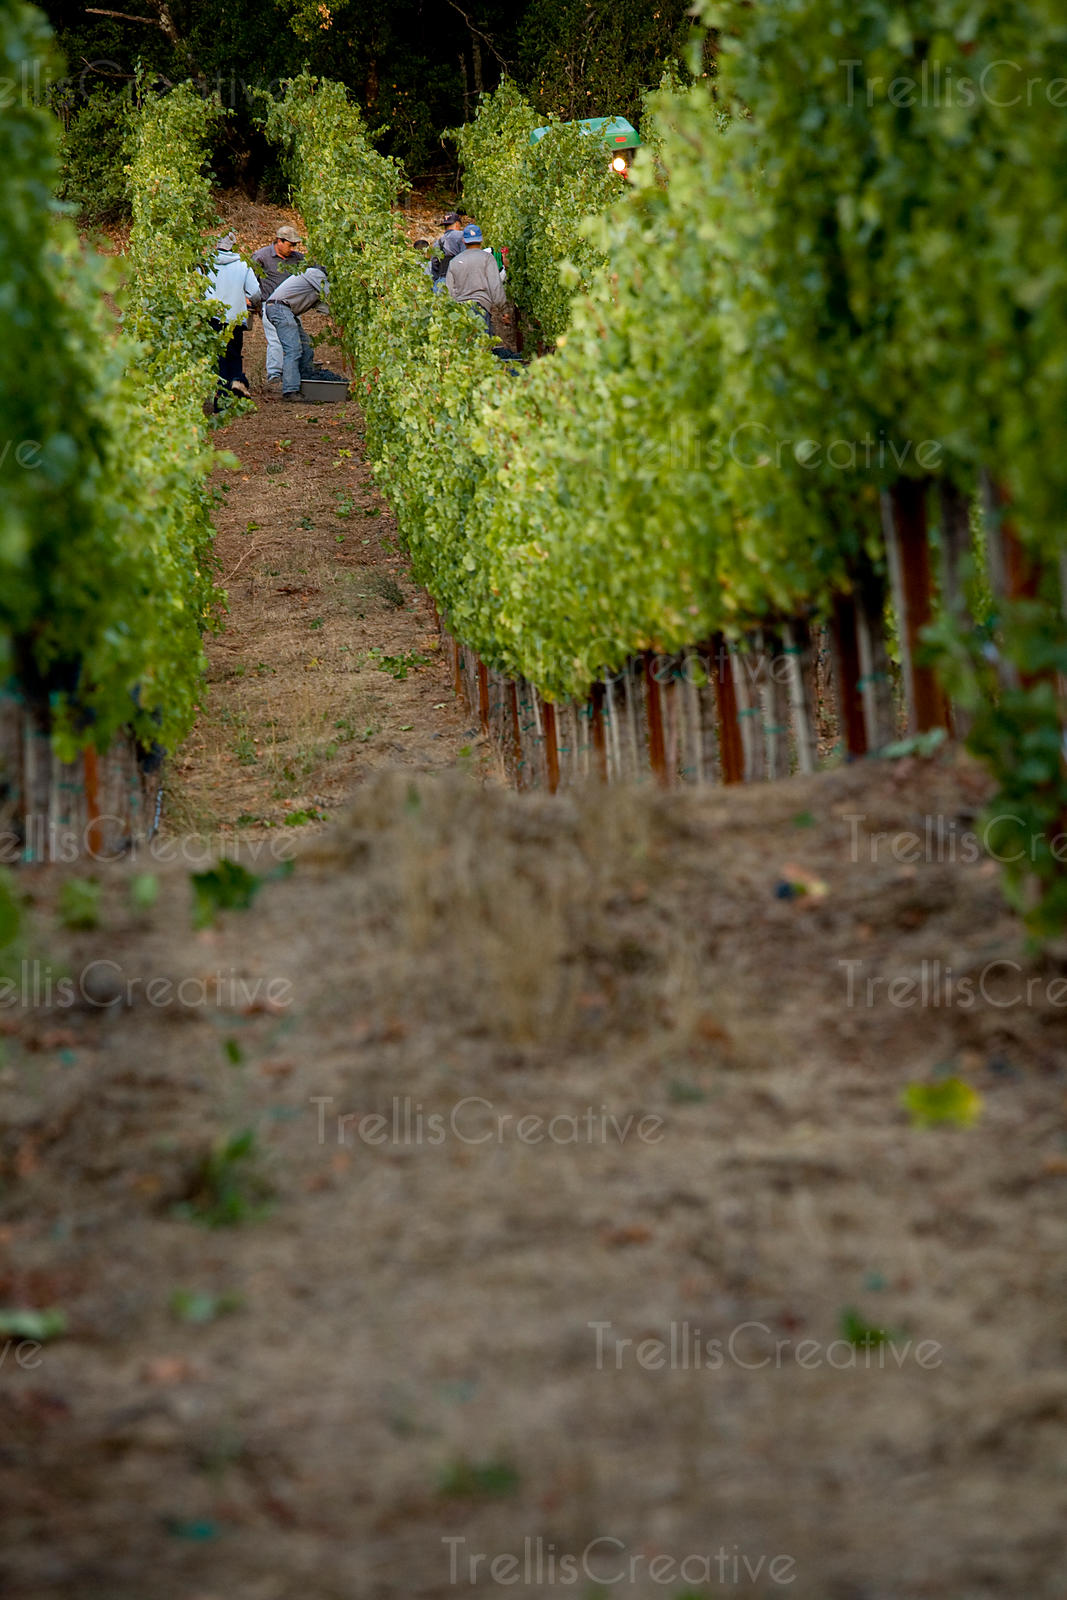 Migrant Latino workers harvest grapes in the shade of a steep mountain vineyard